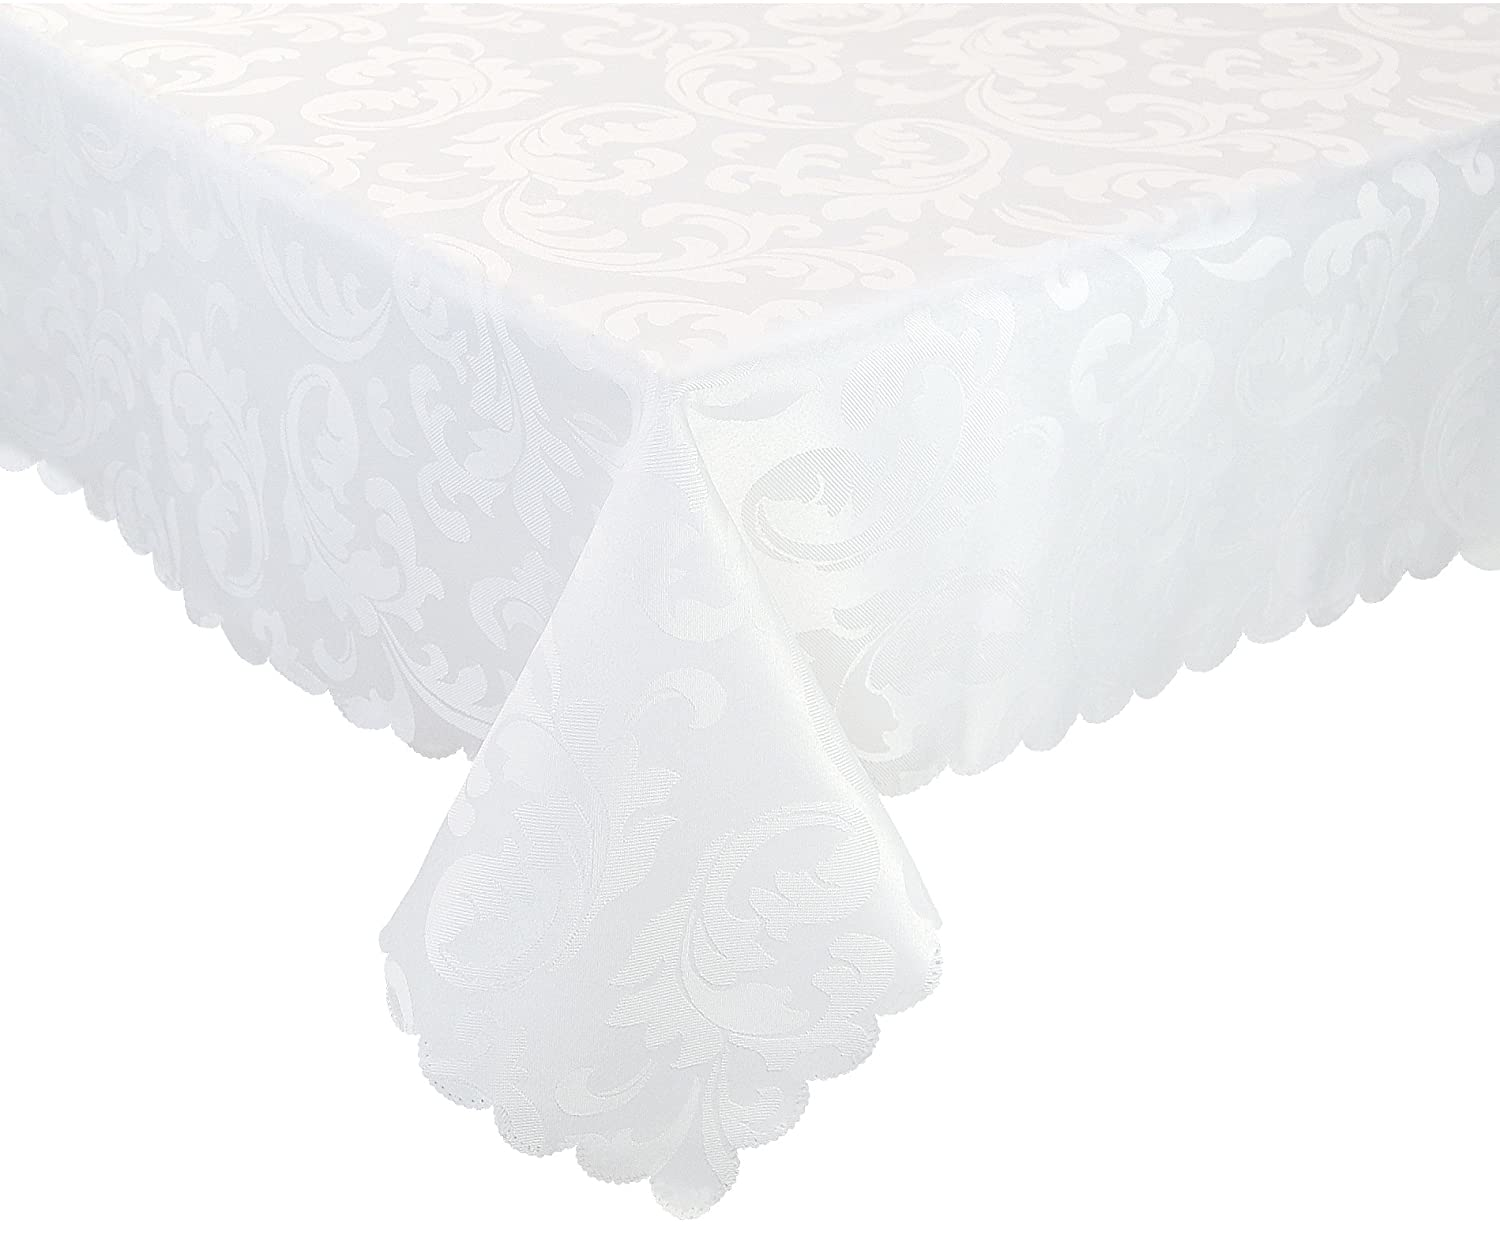 EcoSol Designs Microfiber Damask Tablecloth, Wrinkle-Free & Stain Resistant (60x84, White) Foliate